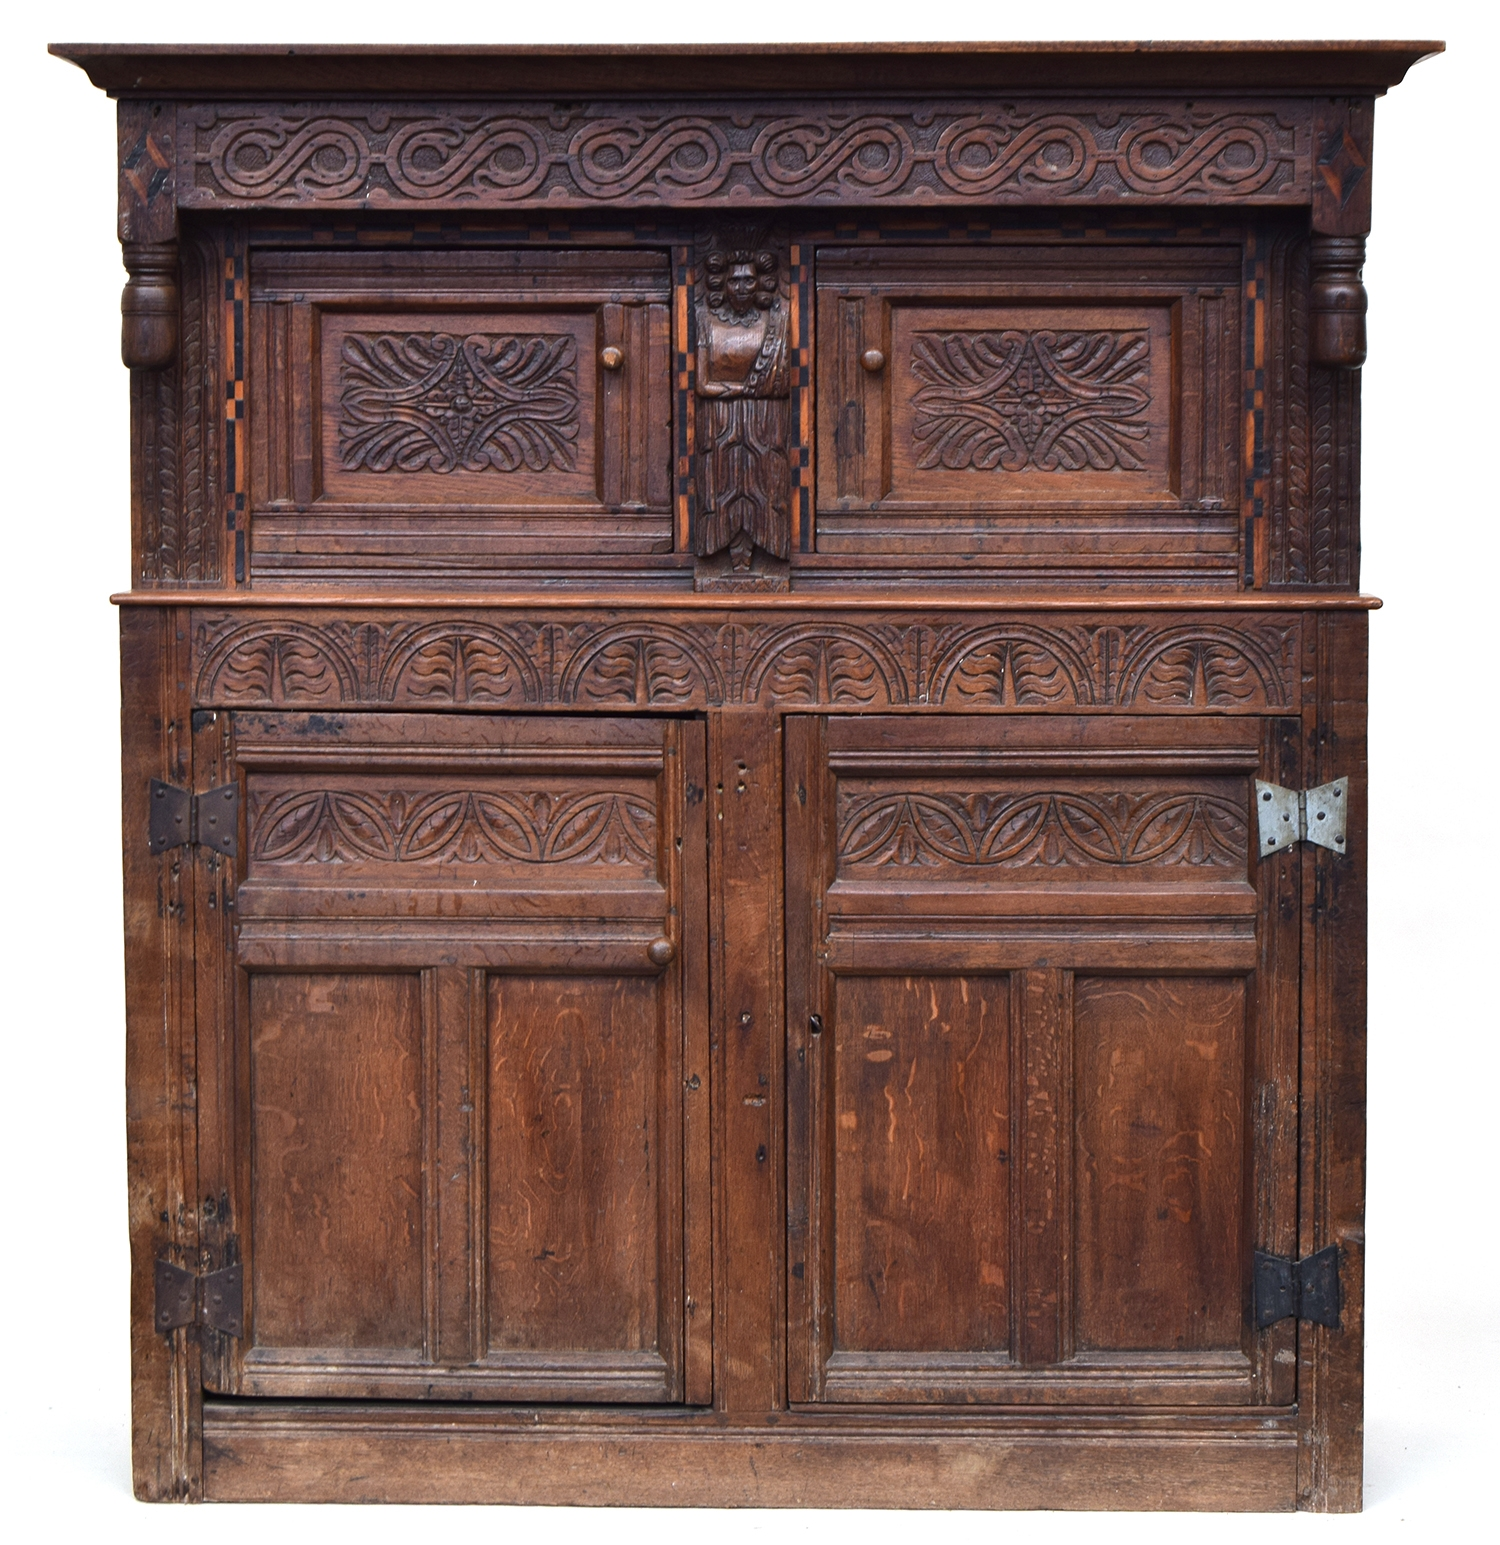 A 17th century joined oak court cupboard, boarded top, the upper section with turned pendants and